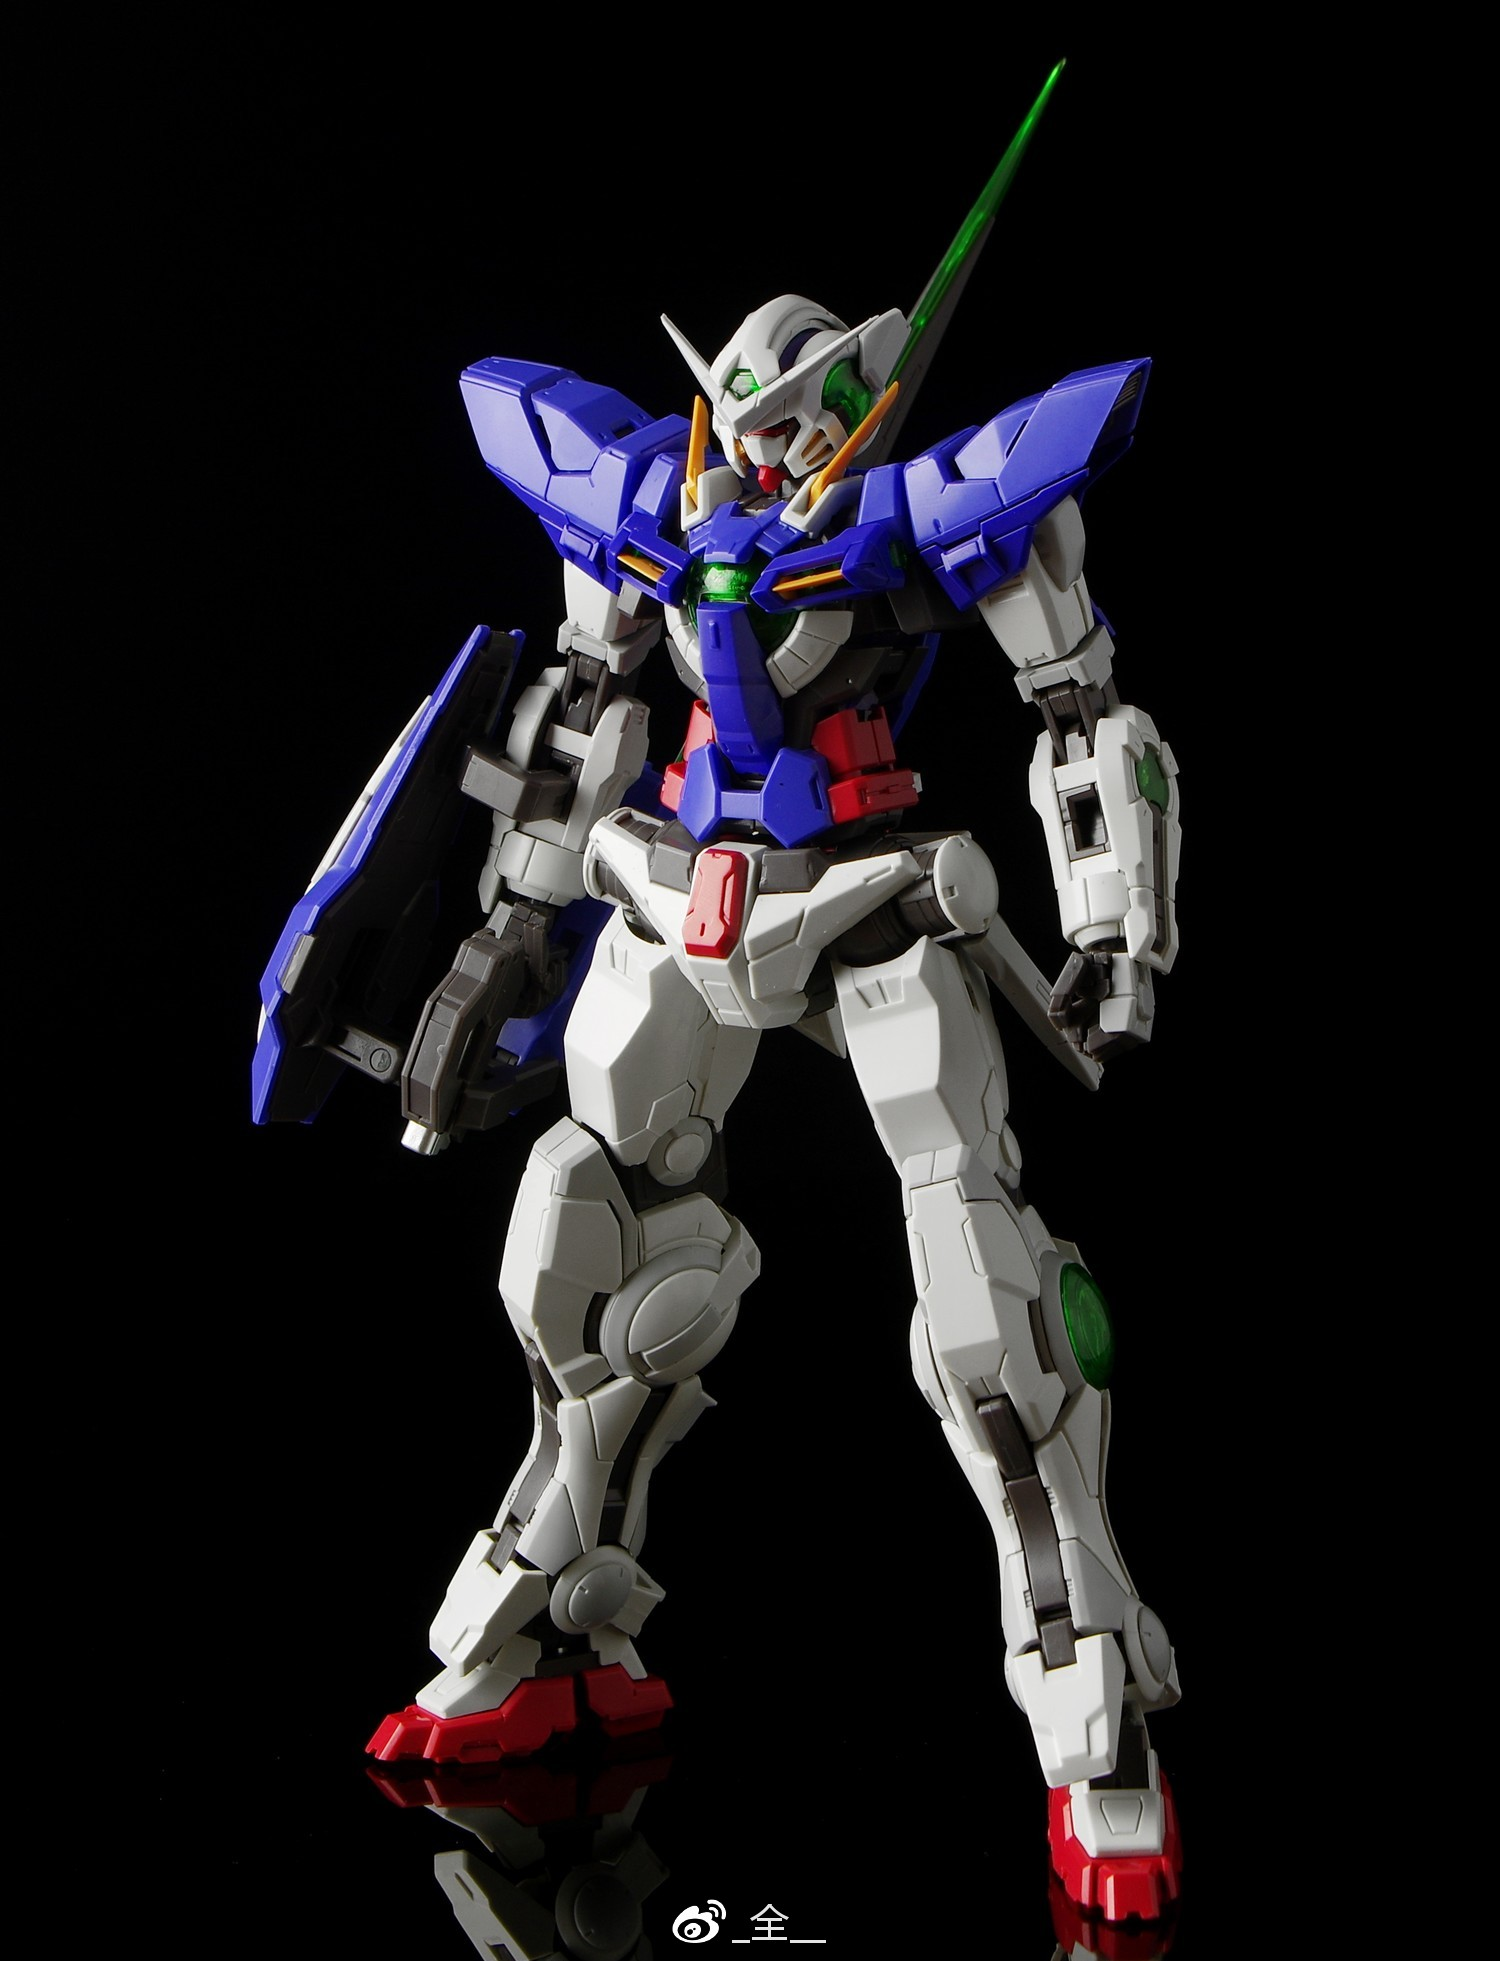 S269_mg_exia_led_hobby_star_inask_084.jpg